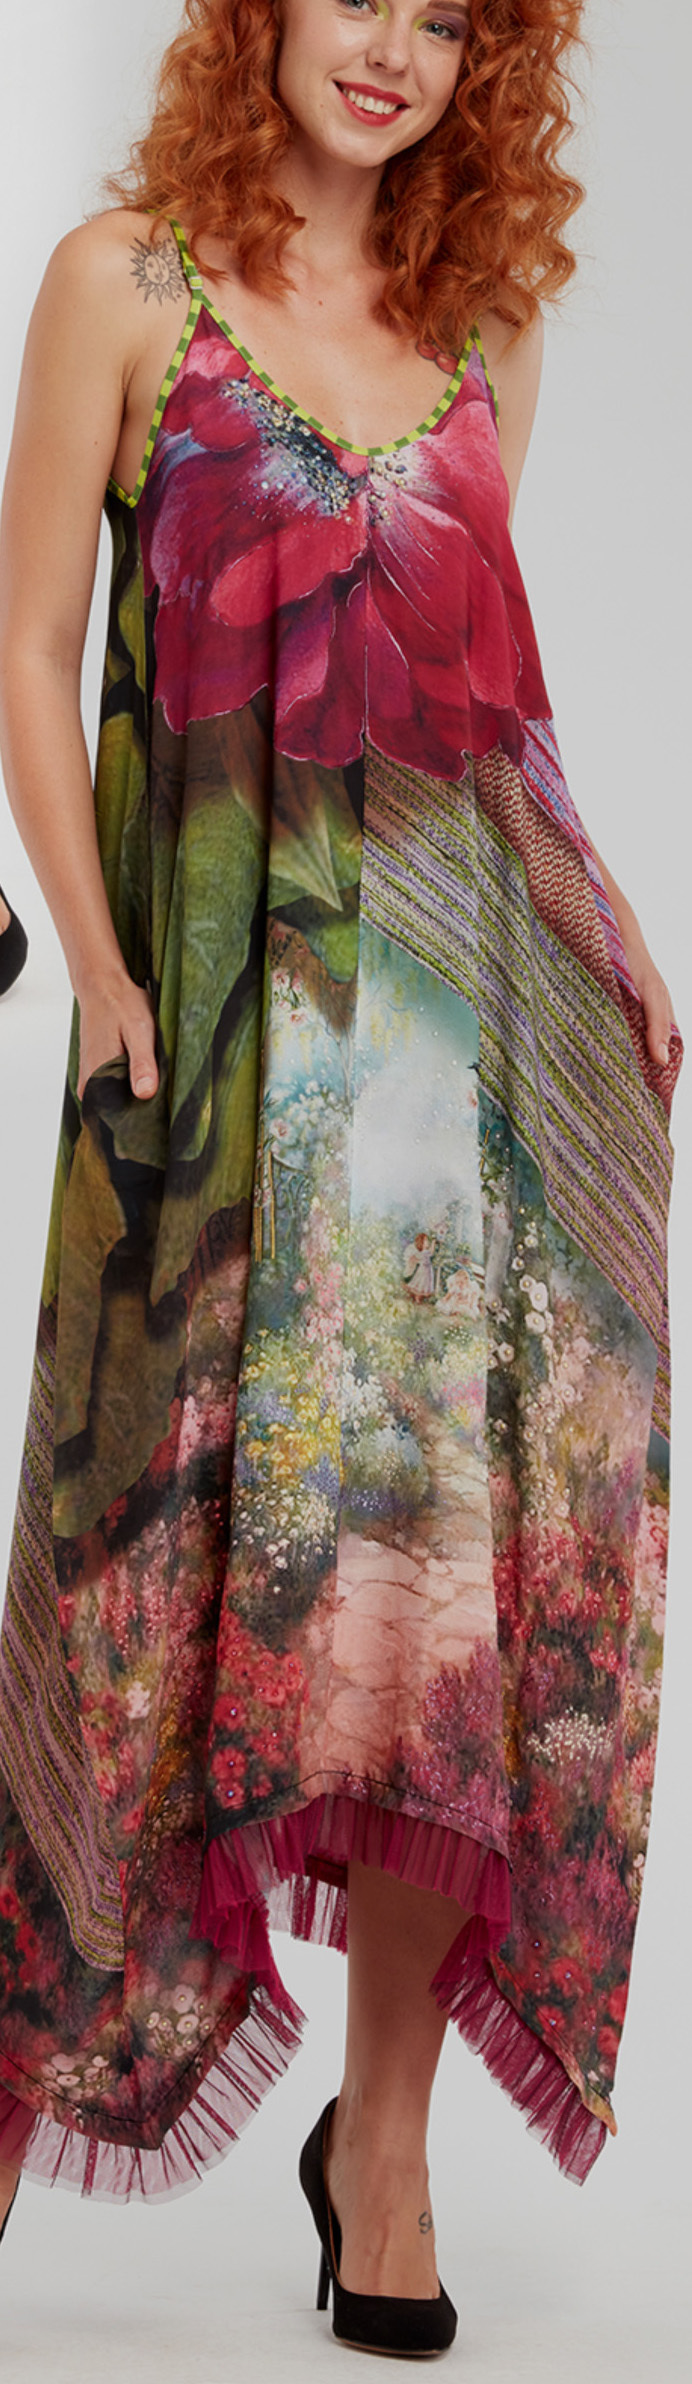 IPNG: In Paradiso Cherry Carnation 3D Illusion V-Cut Maxi Dress